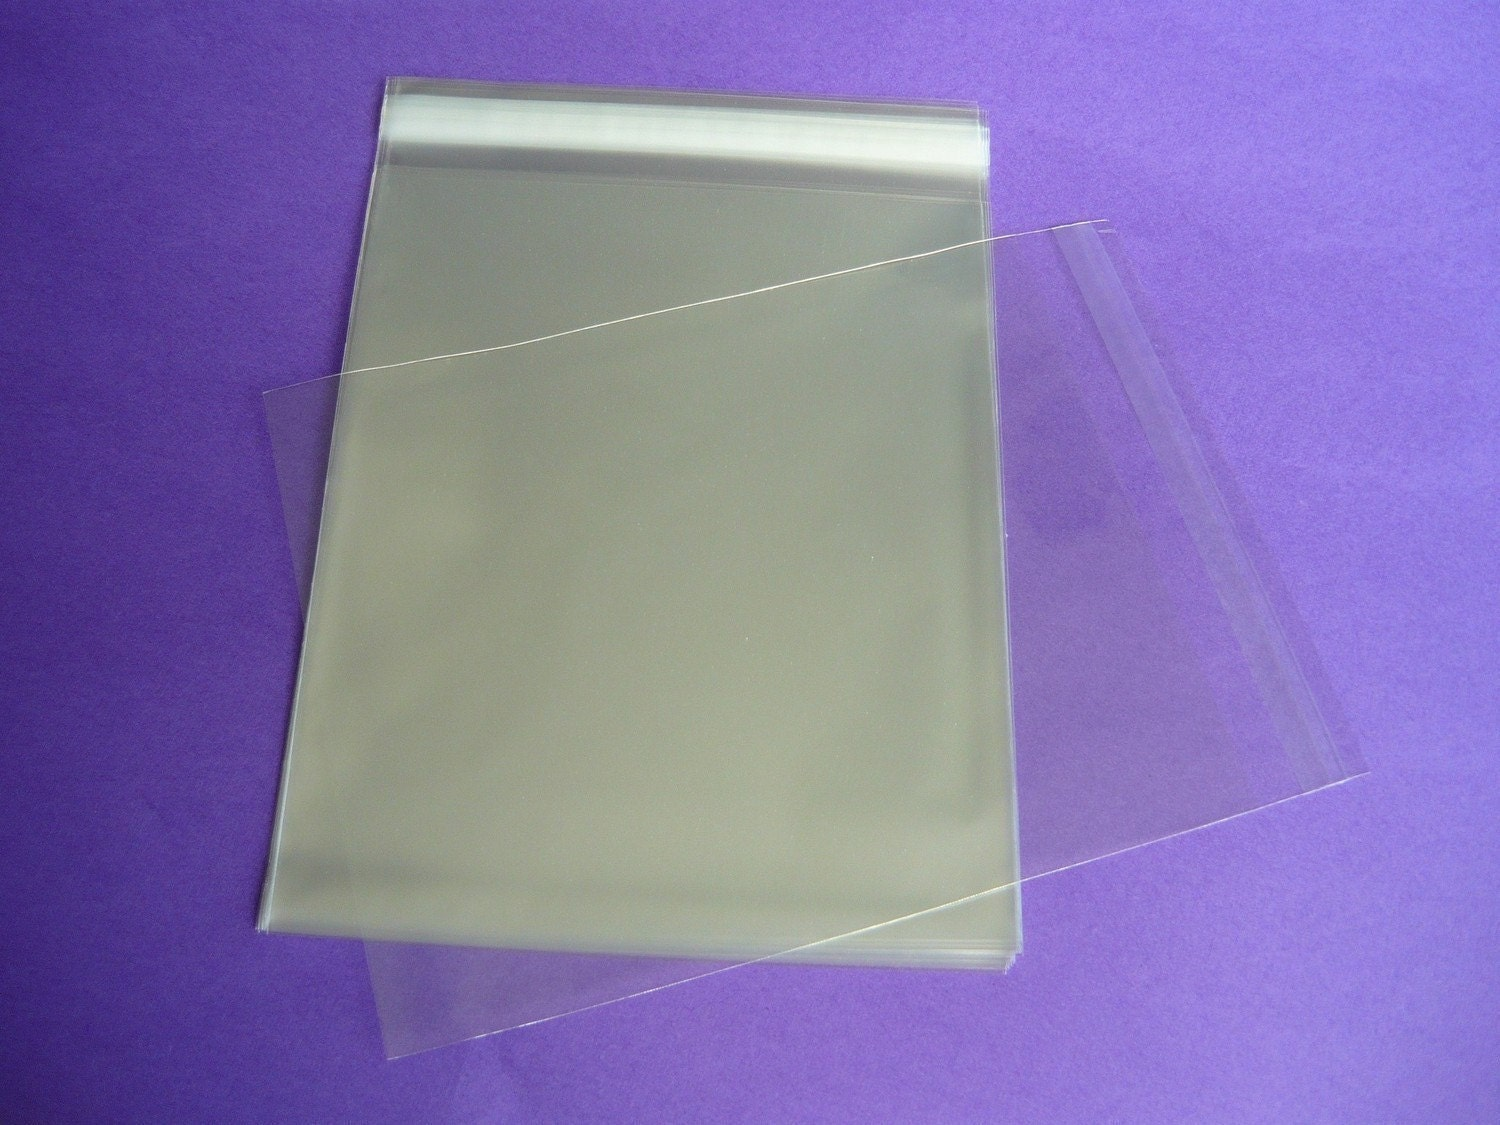 ClearBags 11 x 14 Crystal Clear Bags Art Sleeve Protects Photos 11x14 clear photo sleeves